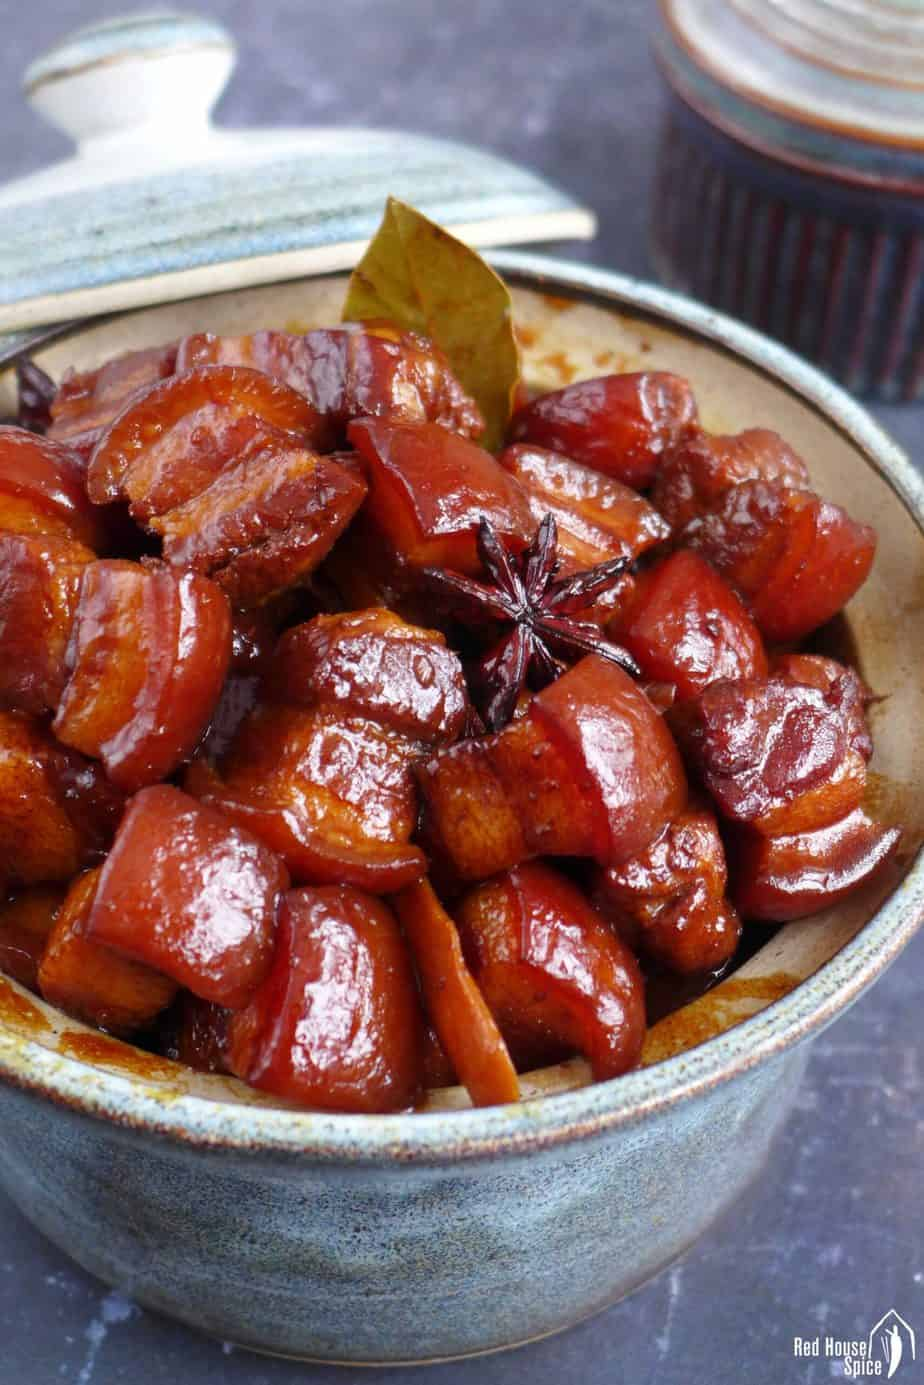 Chinese red braised pork belly in a bowl